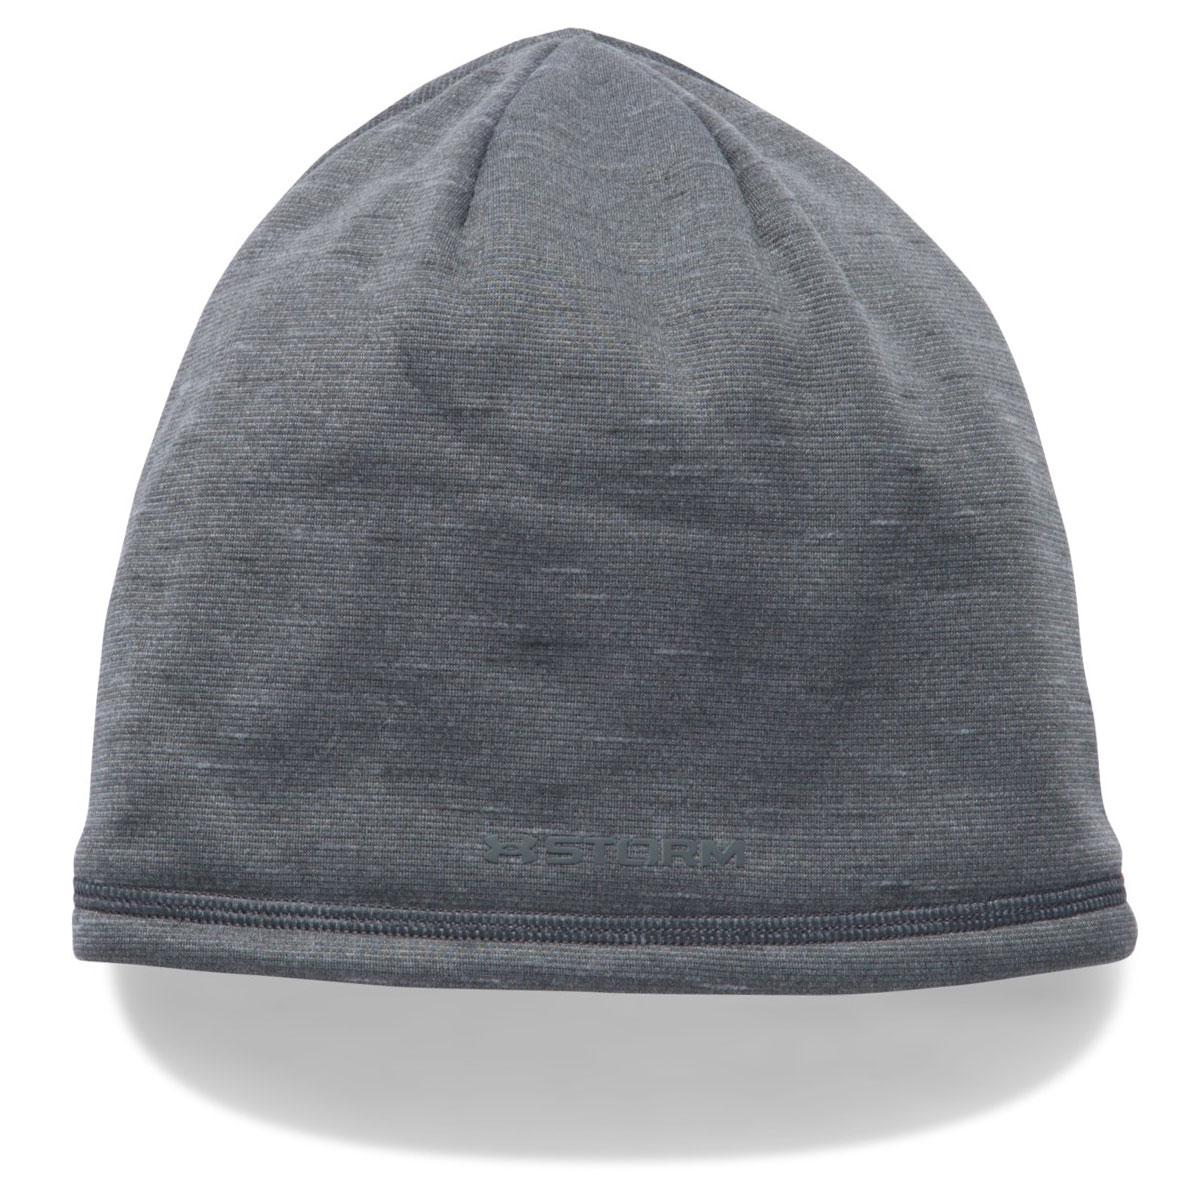 Under Armour Mens Reactor Storm Beanie 2.0 Winter Wooly Hat  57ca7d8ccac